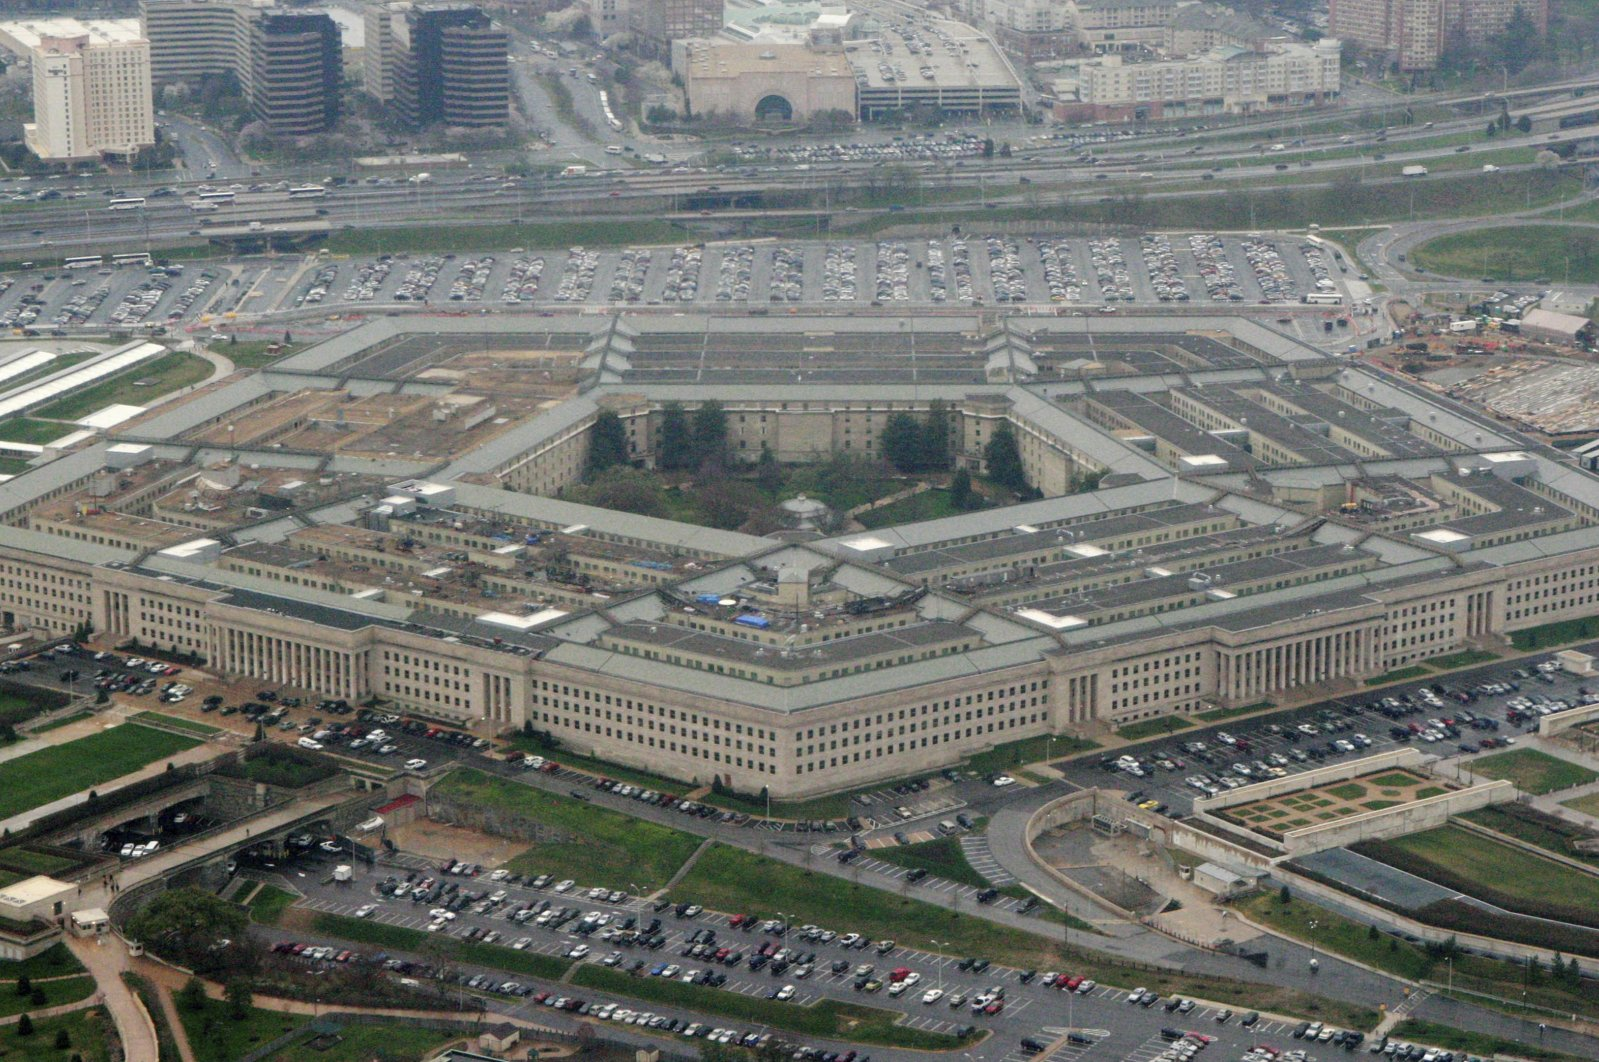 The Pentagon in Washington is seen in the photograph, March 27, 2008. (AP Photo)